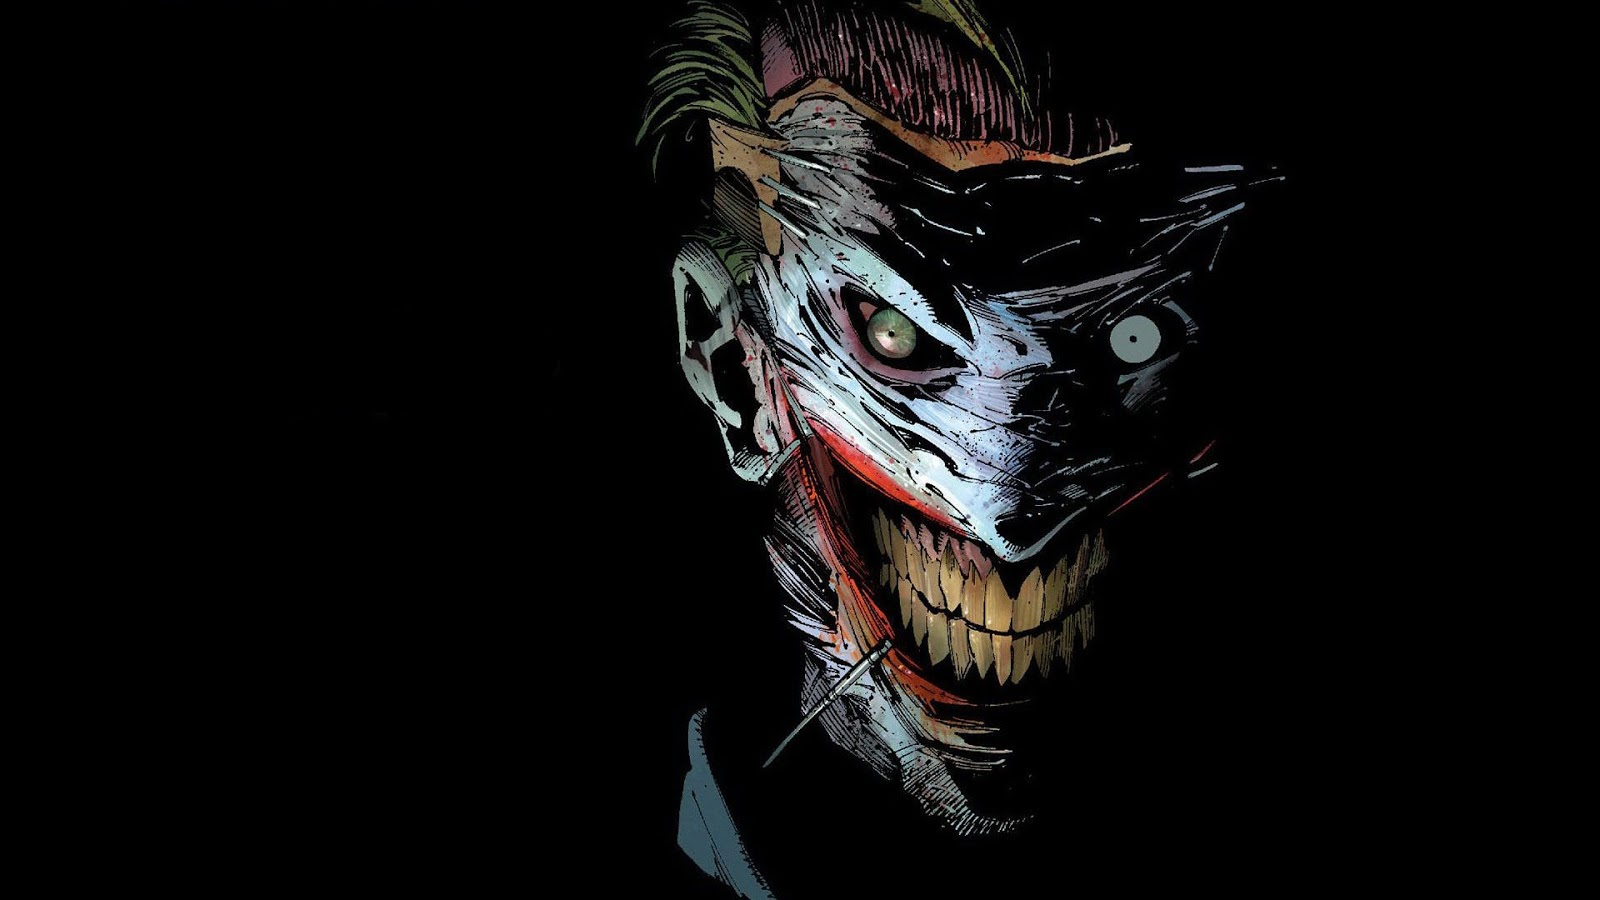 Download The Joker HD Wallpaper For Desktop and Mac 1600x900